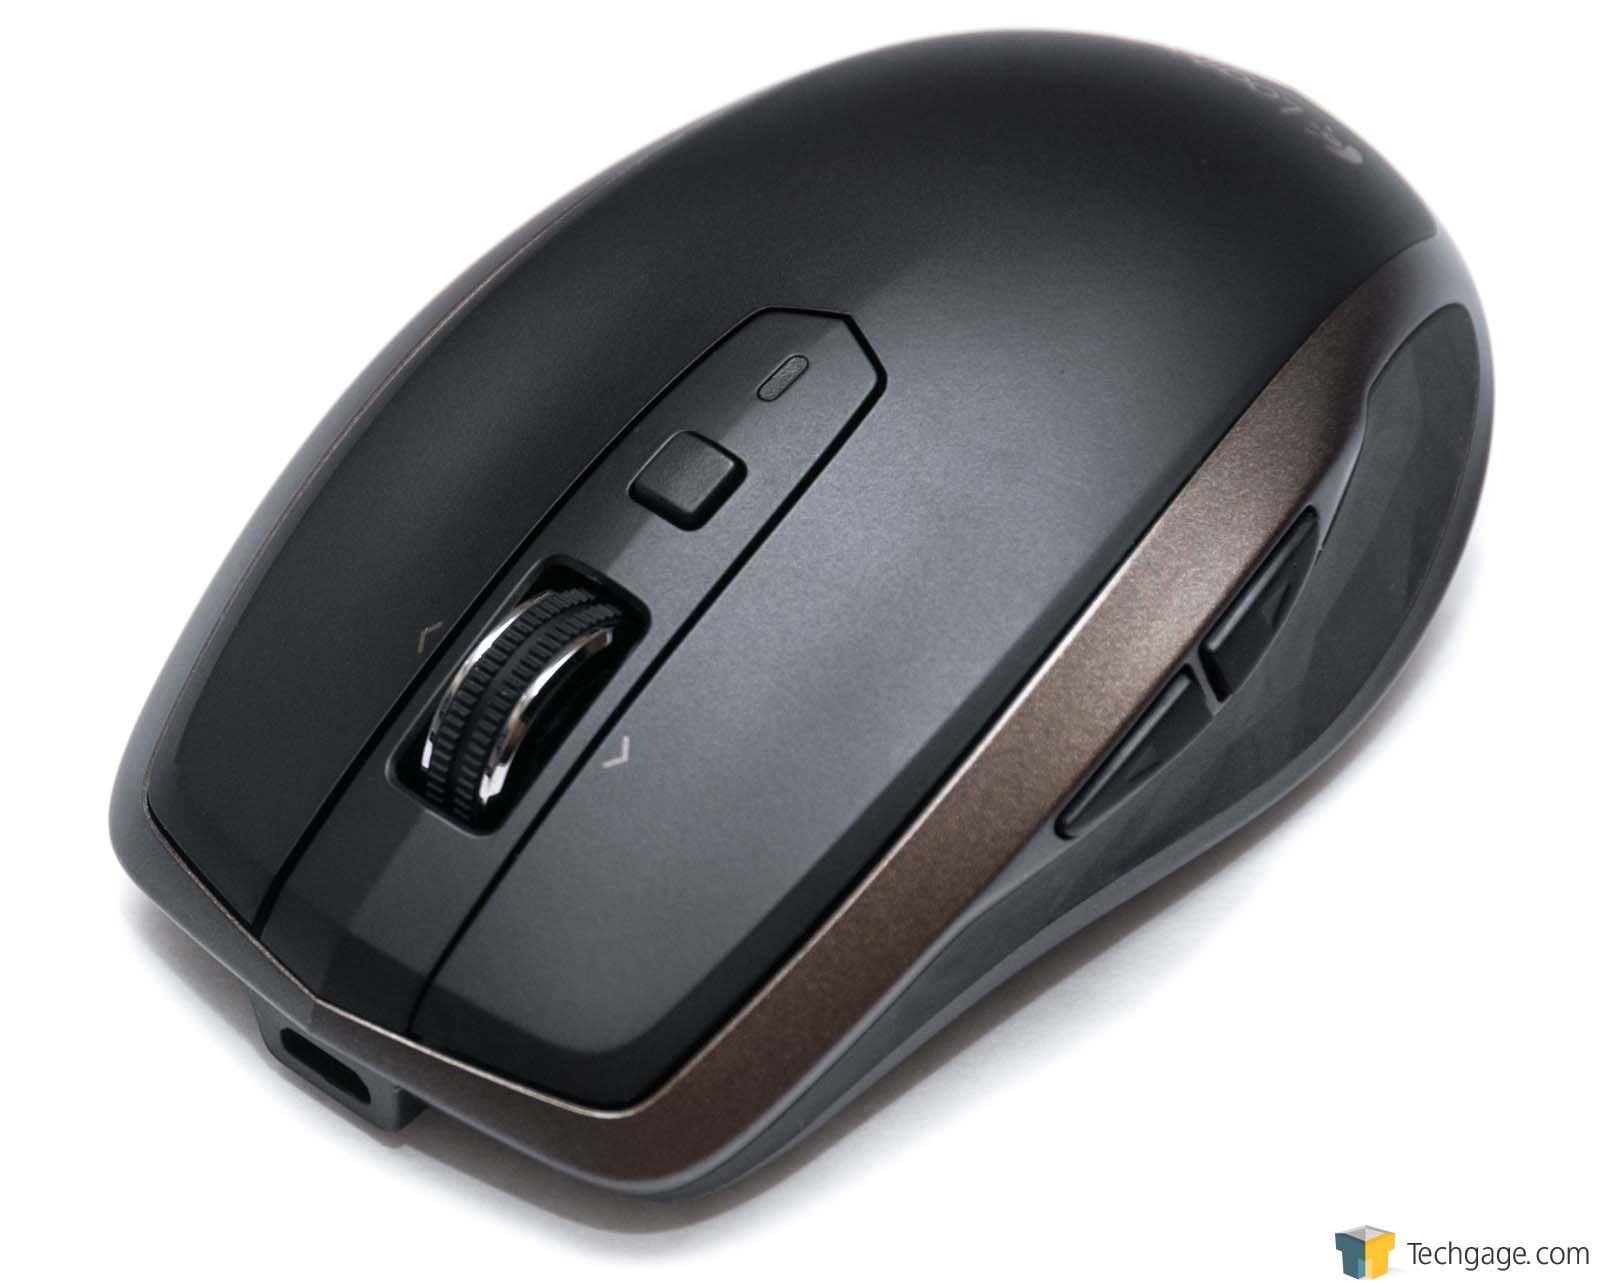 Logitech anywhere mx 2 инструкция